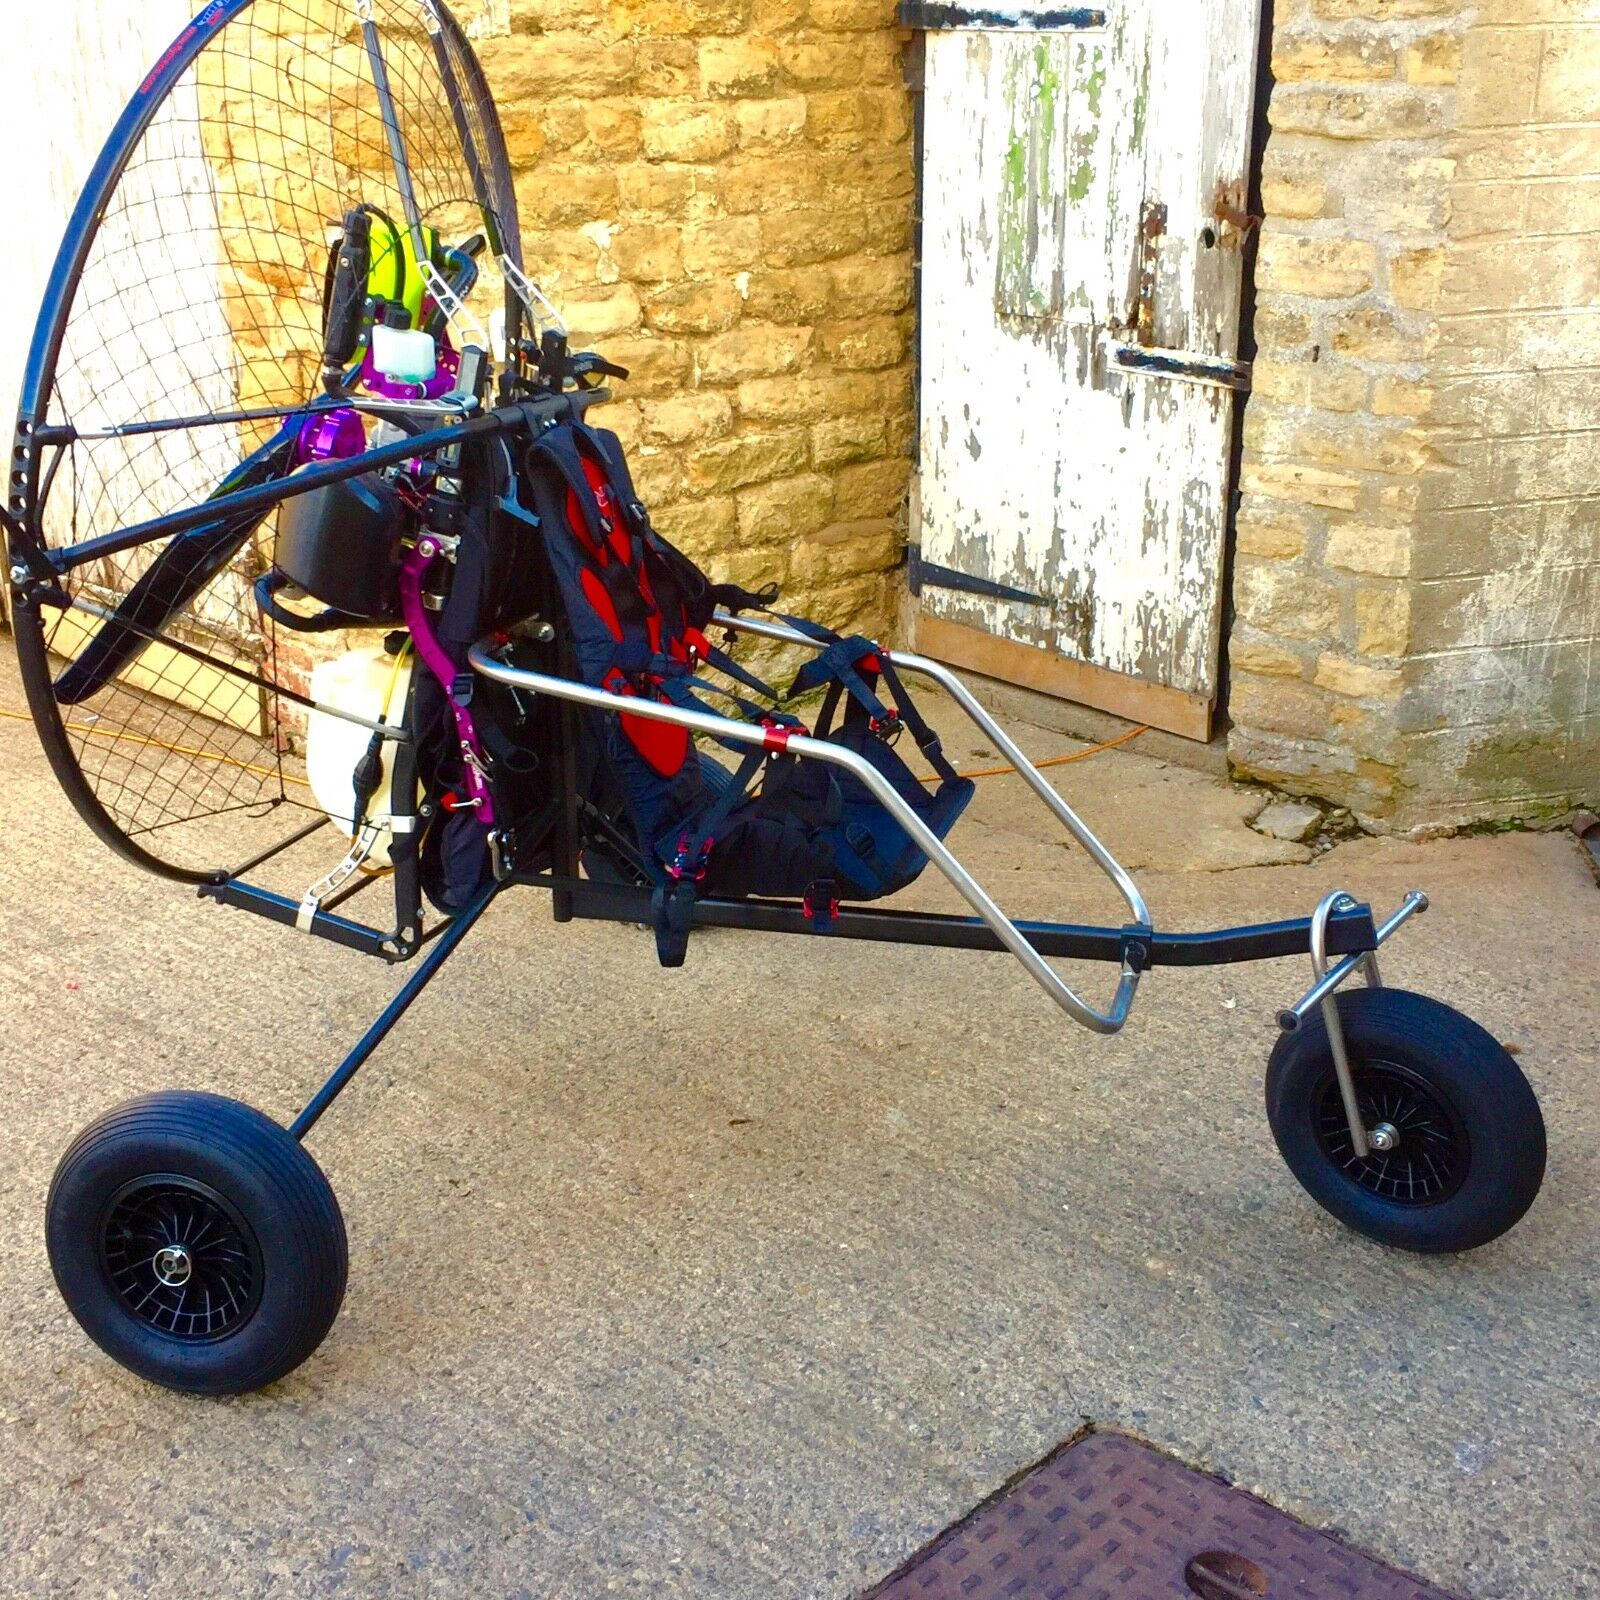 Flymecc carbon S Paramotor + mini trike combo deal save £££££'s